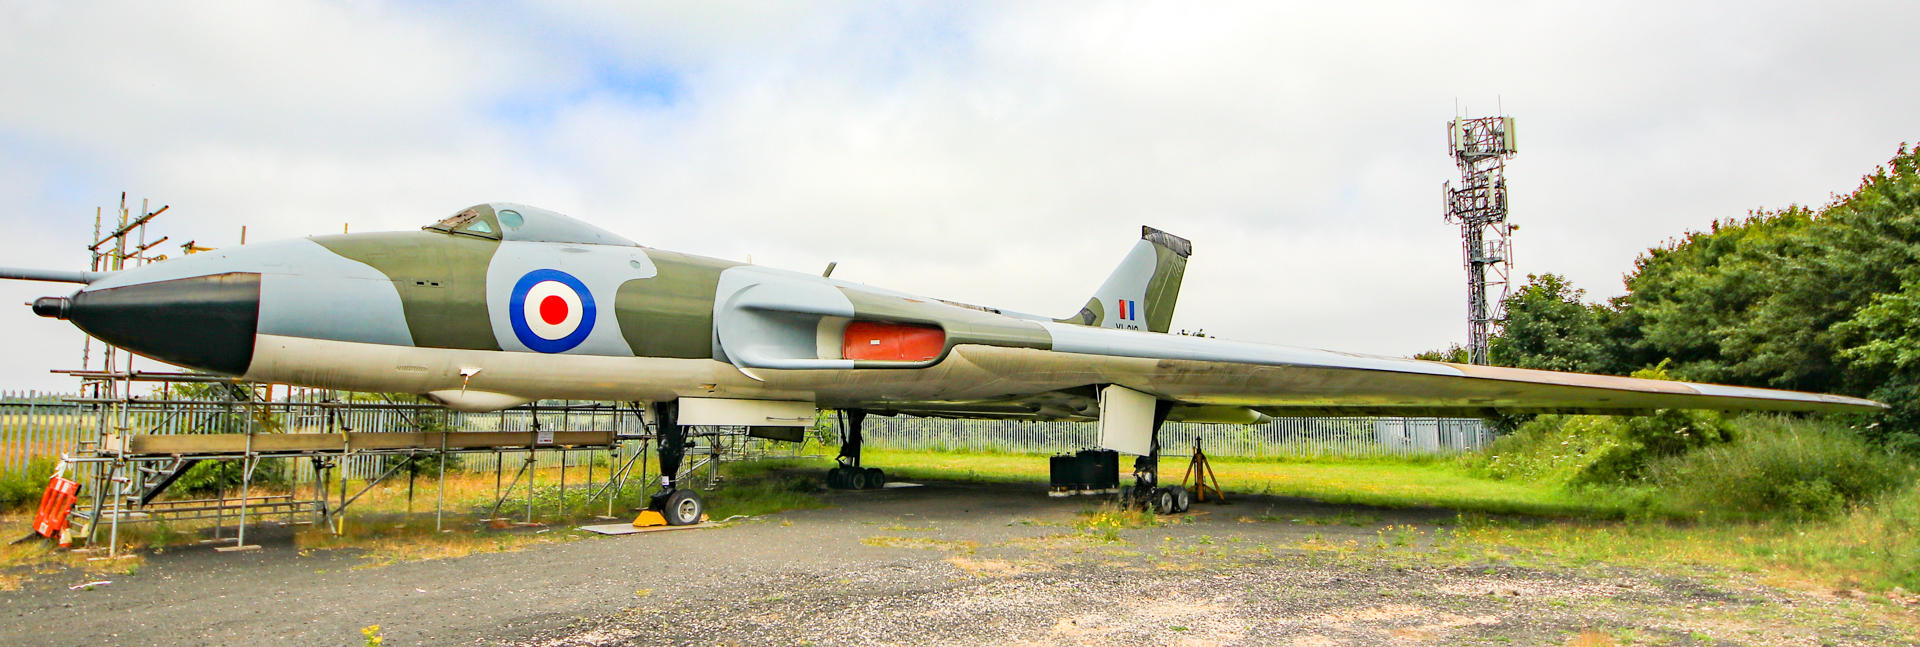 Avro Vulcan aircraft at the North East Land Sea and Air Museum